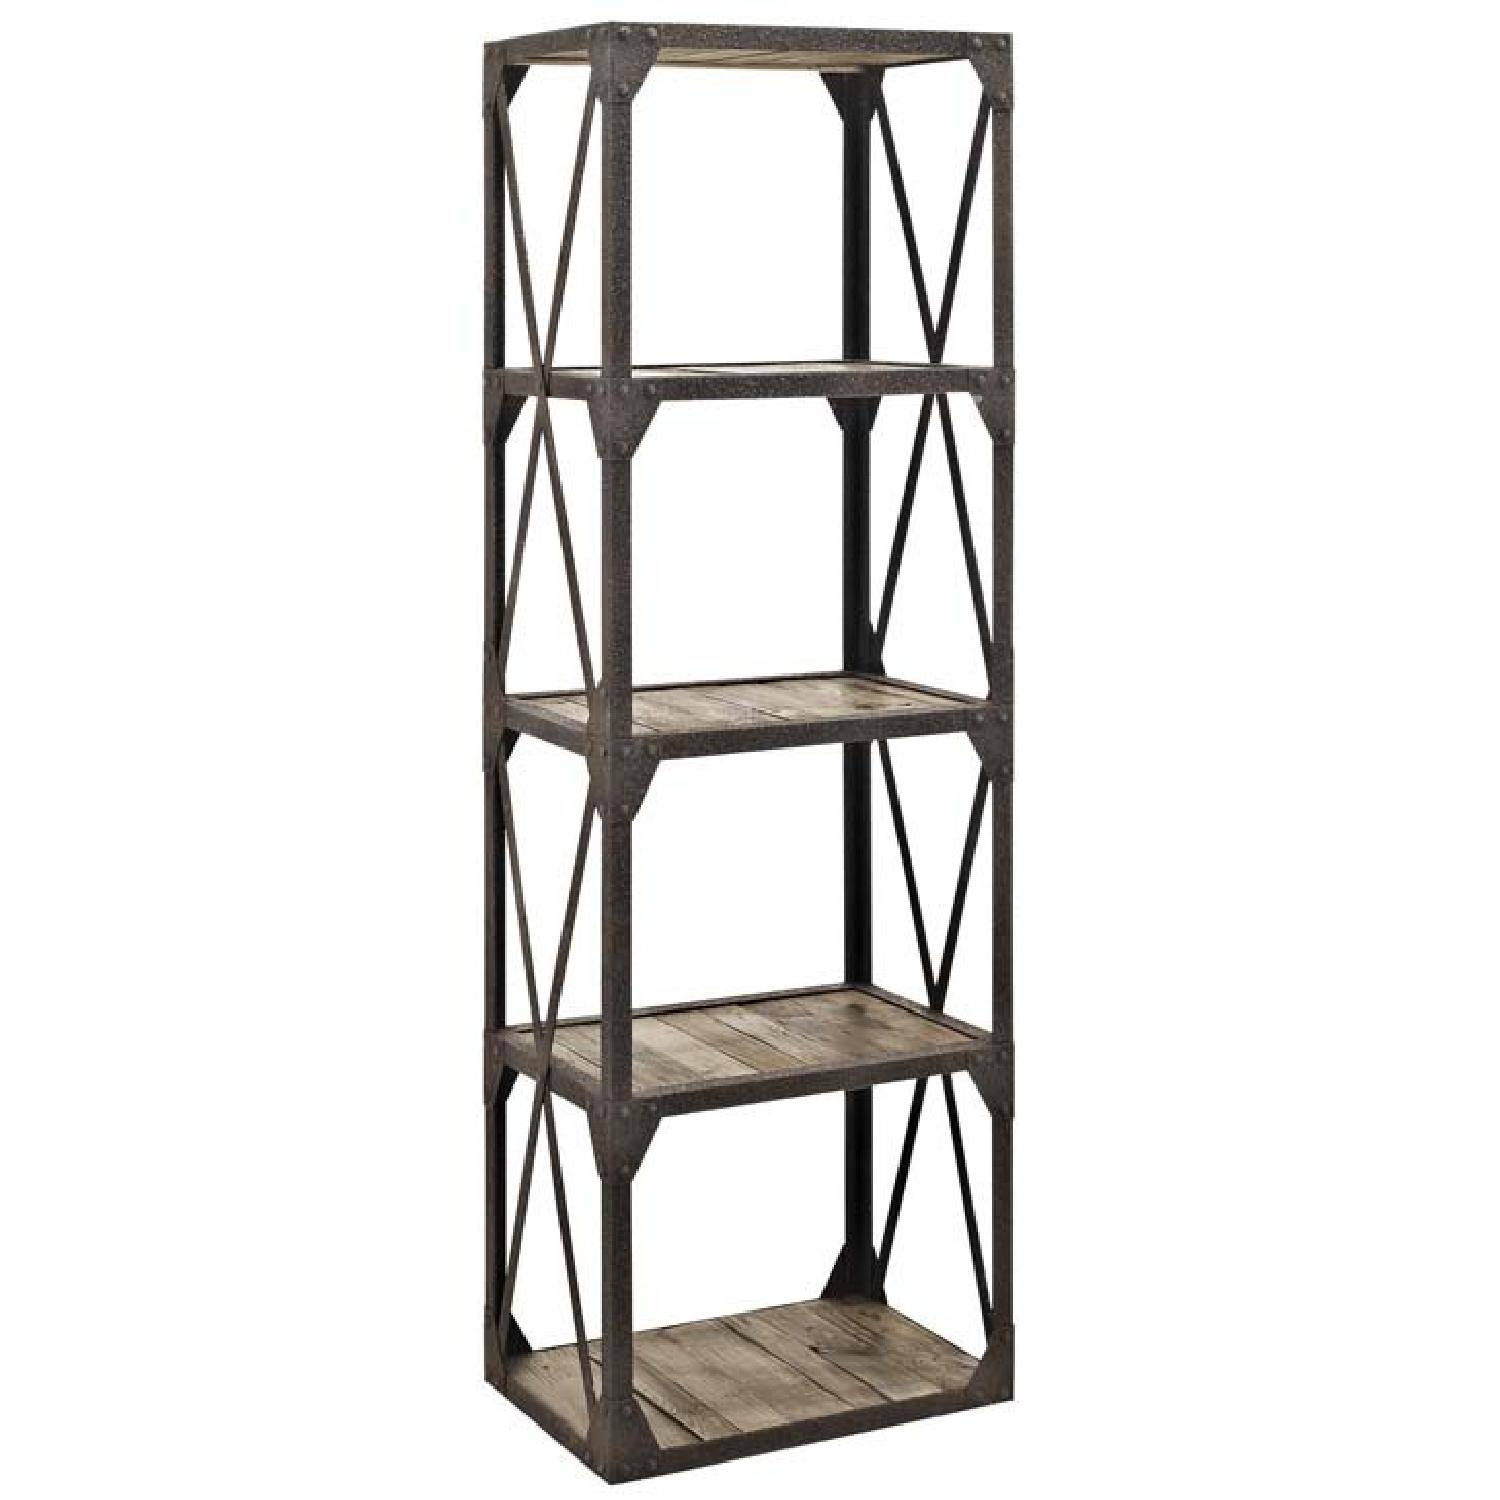 Stave Bookshelf in Brown